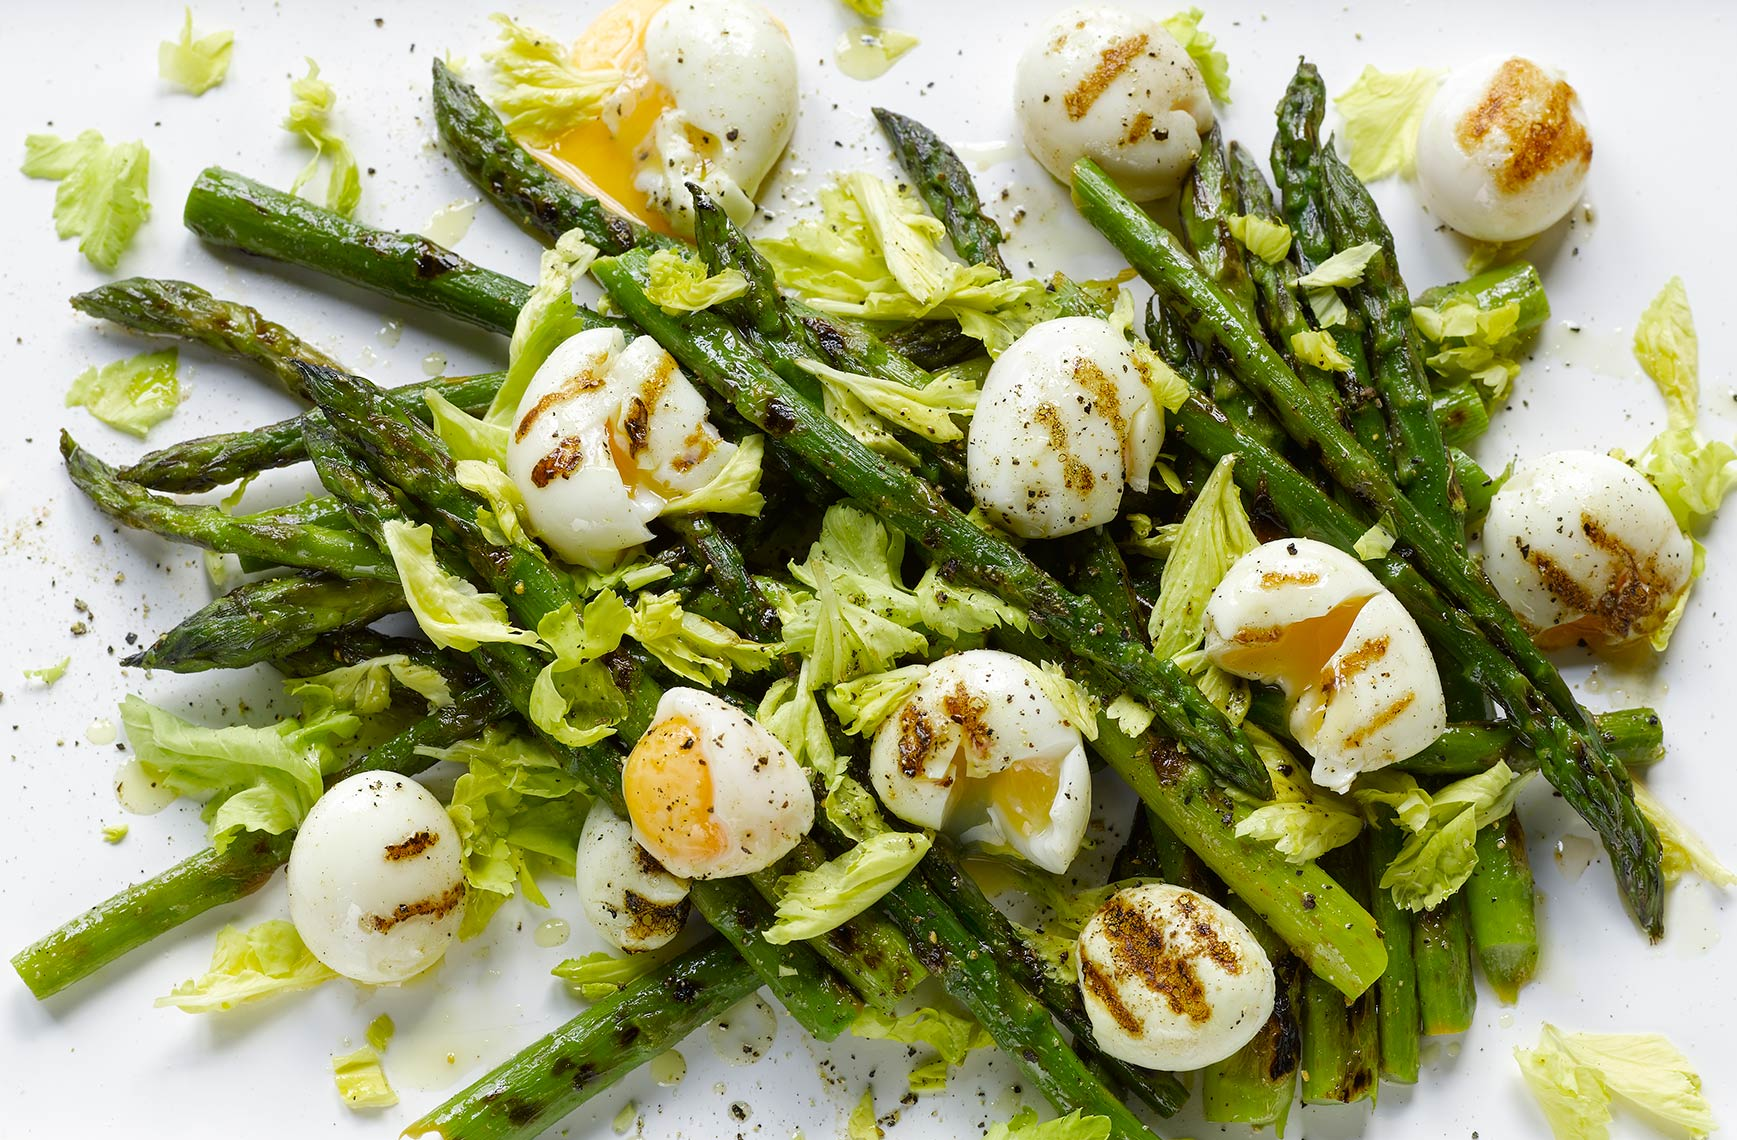 Asparagus celery and quail egg | Colin Campbell-Food Photographer